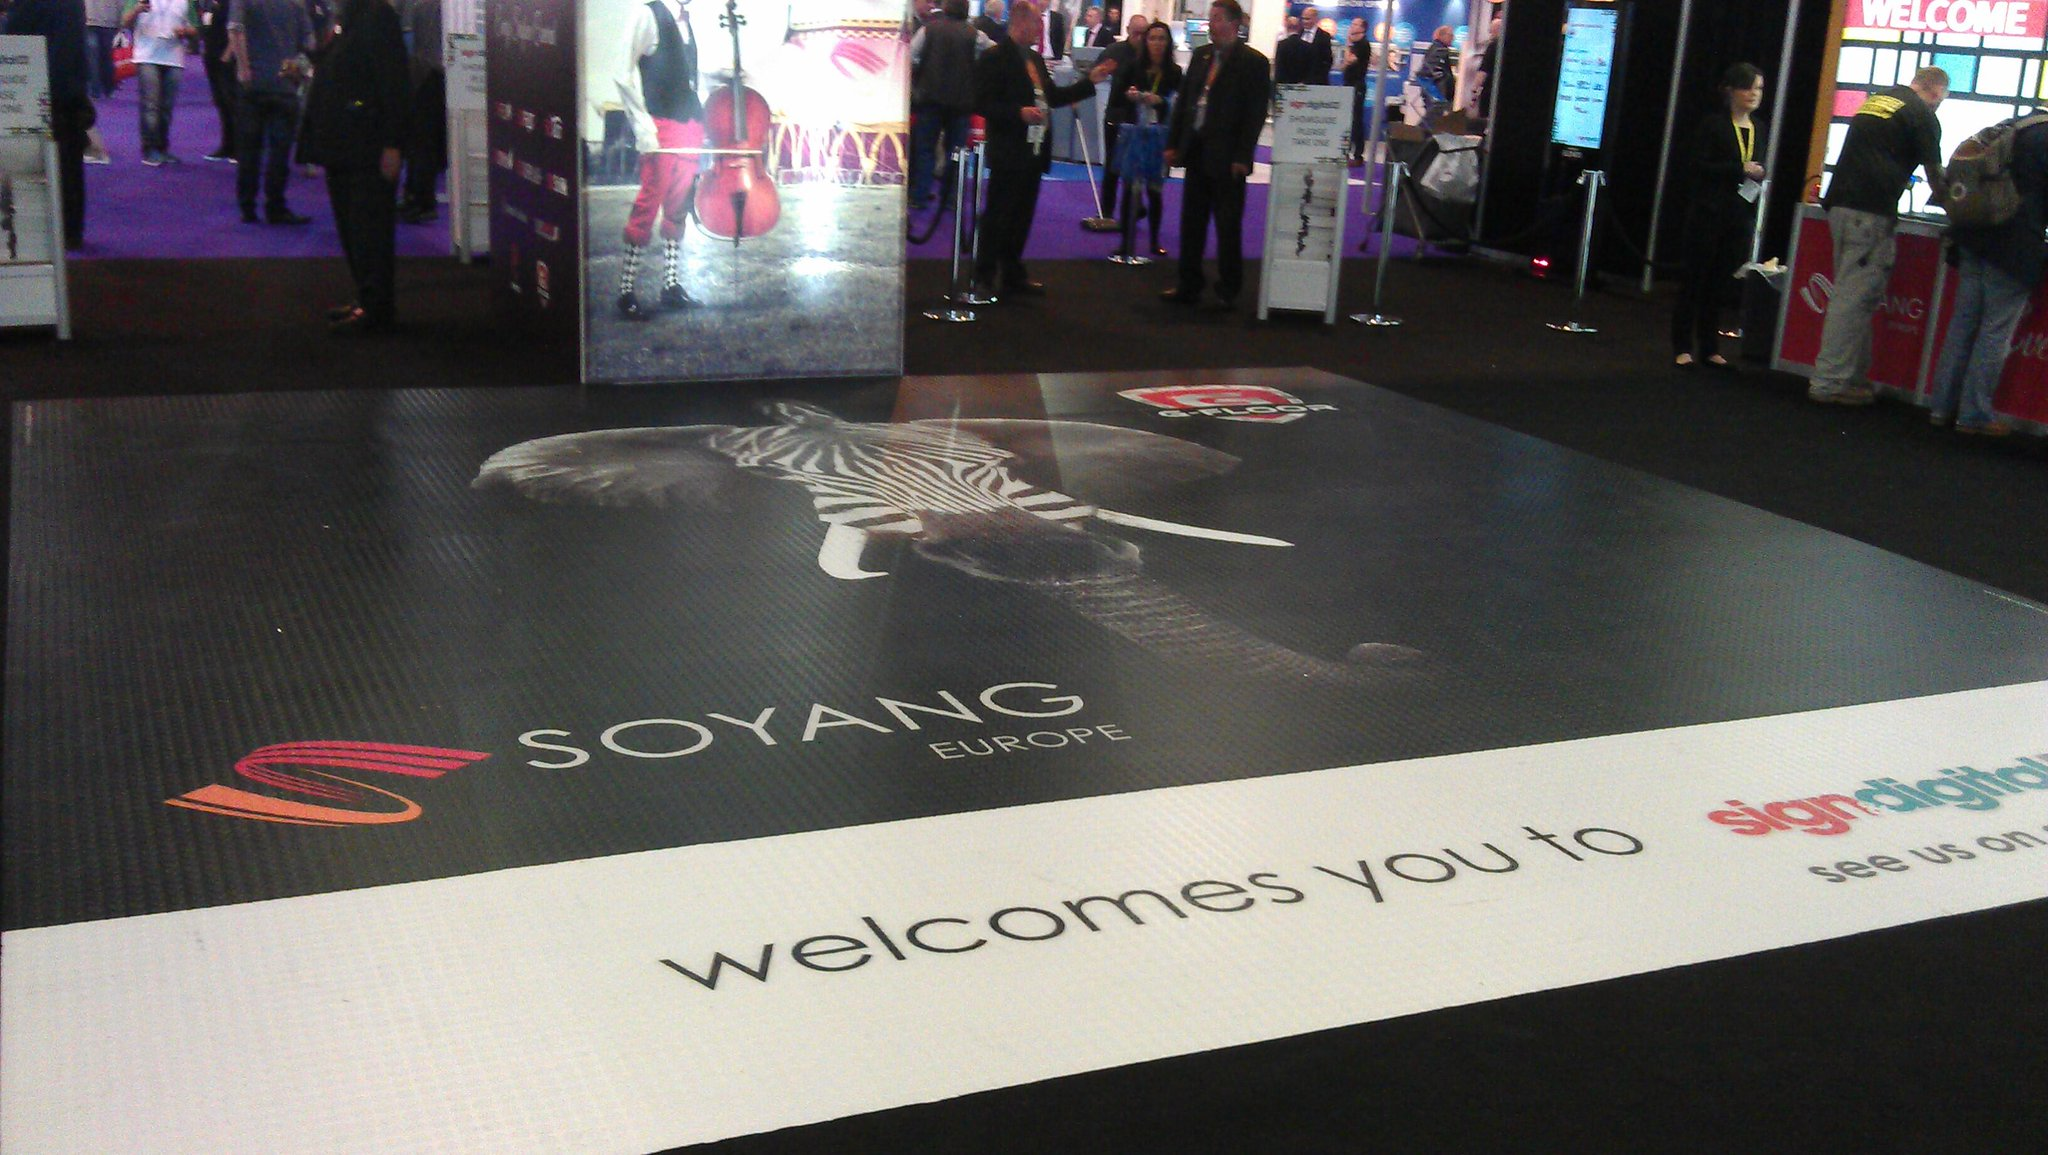 Soyang Europe on Twitter: